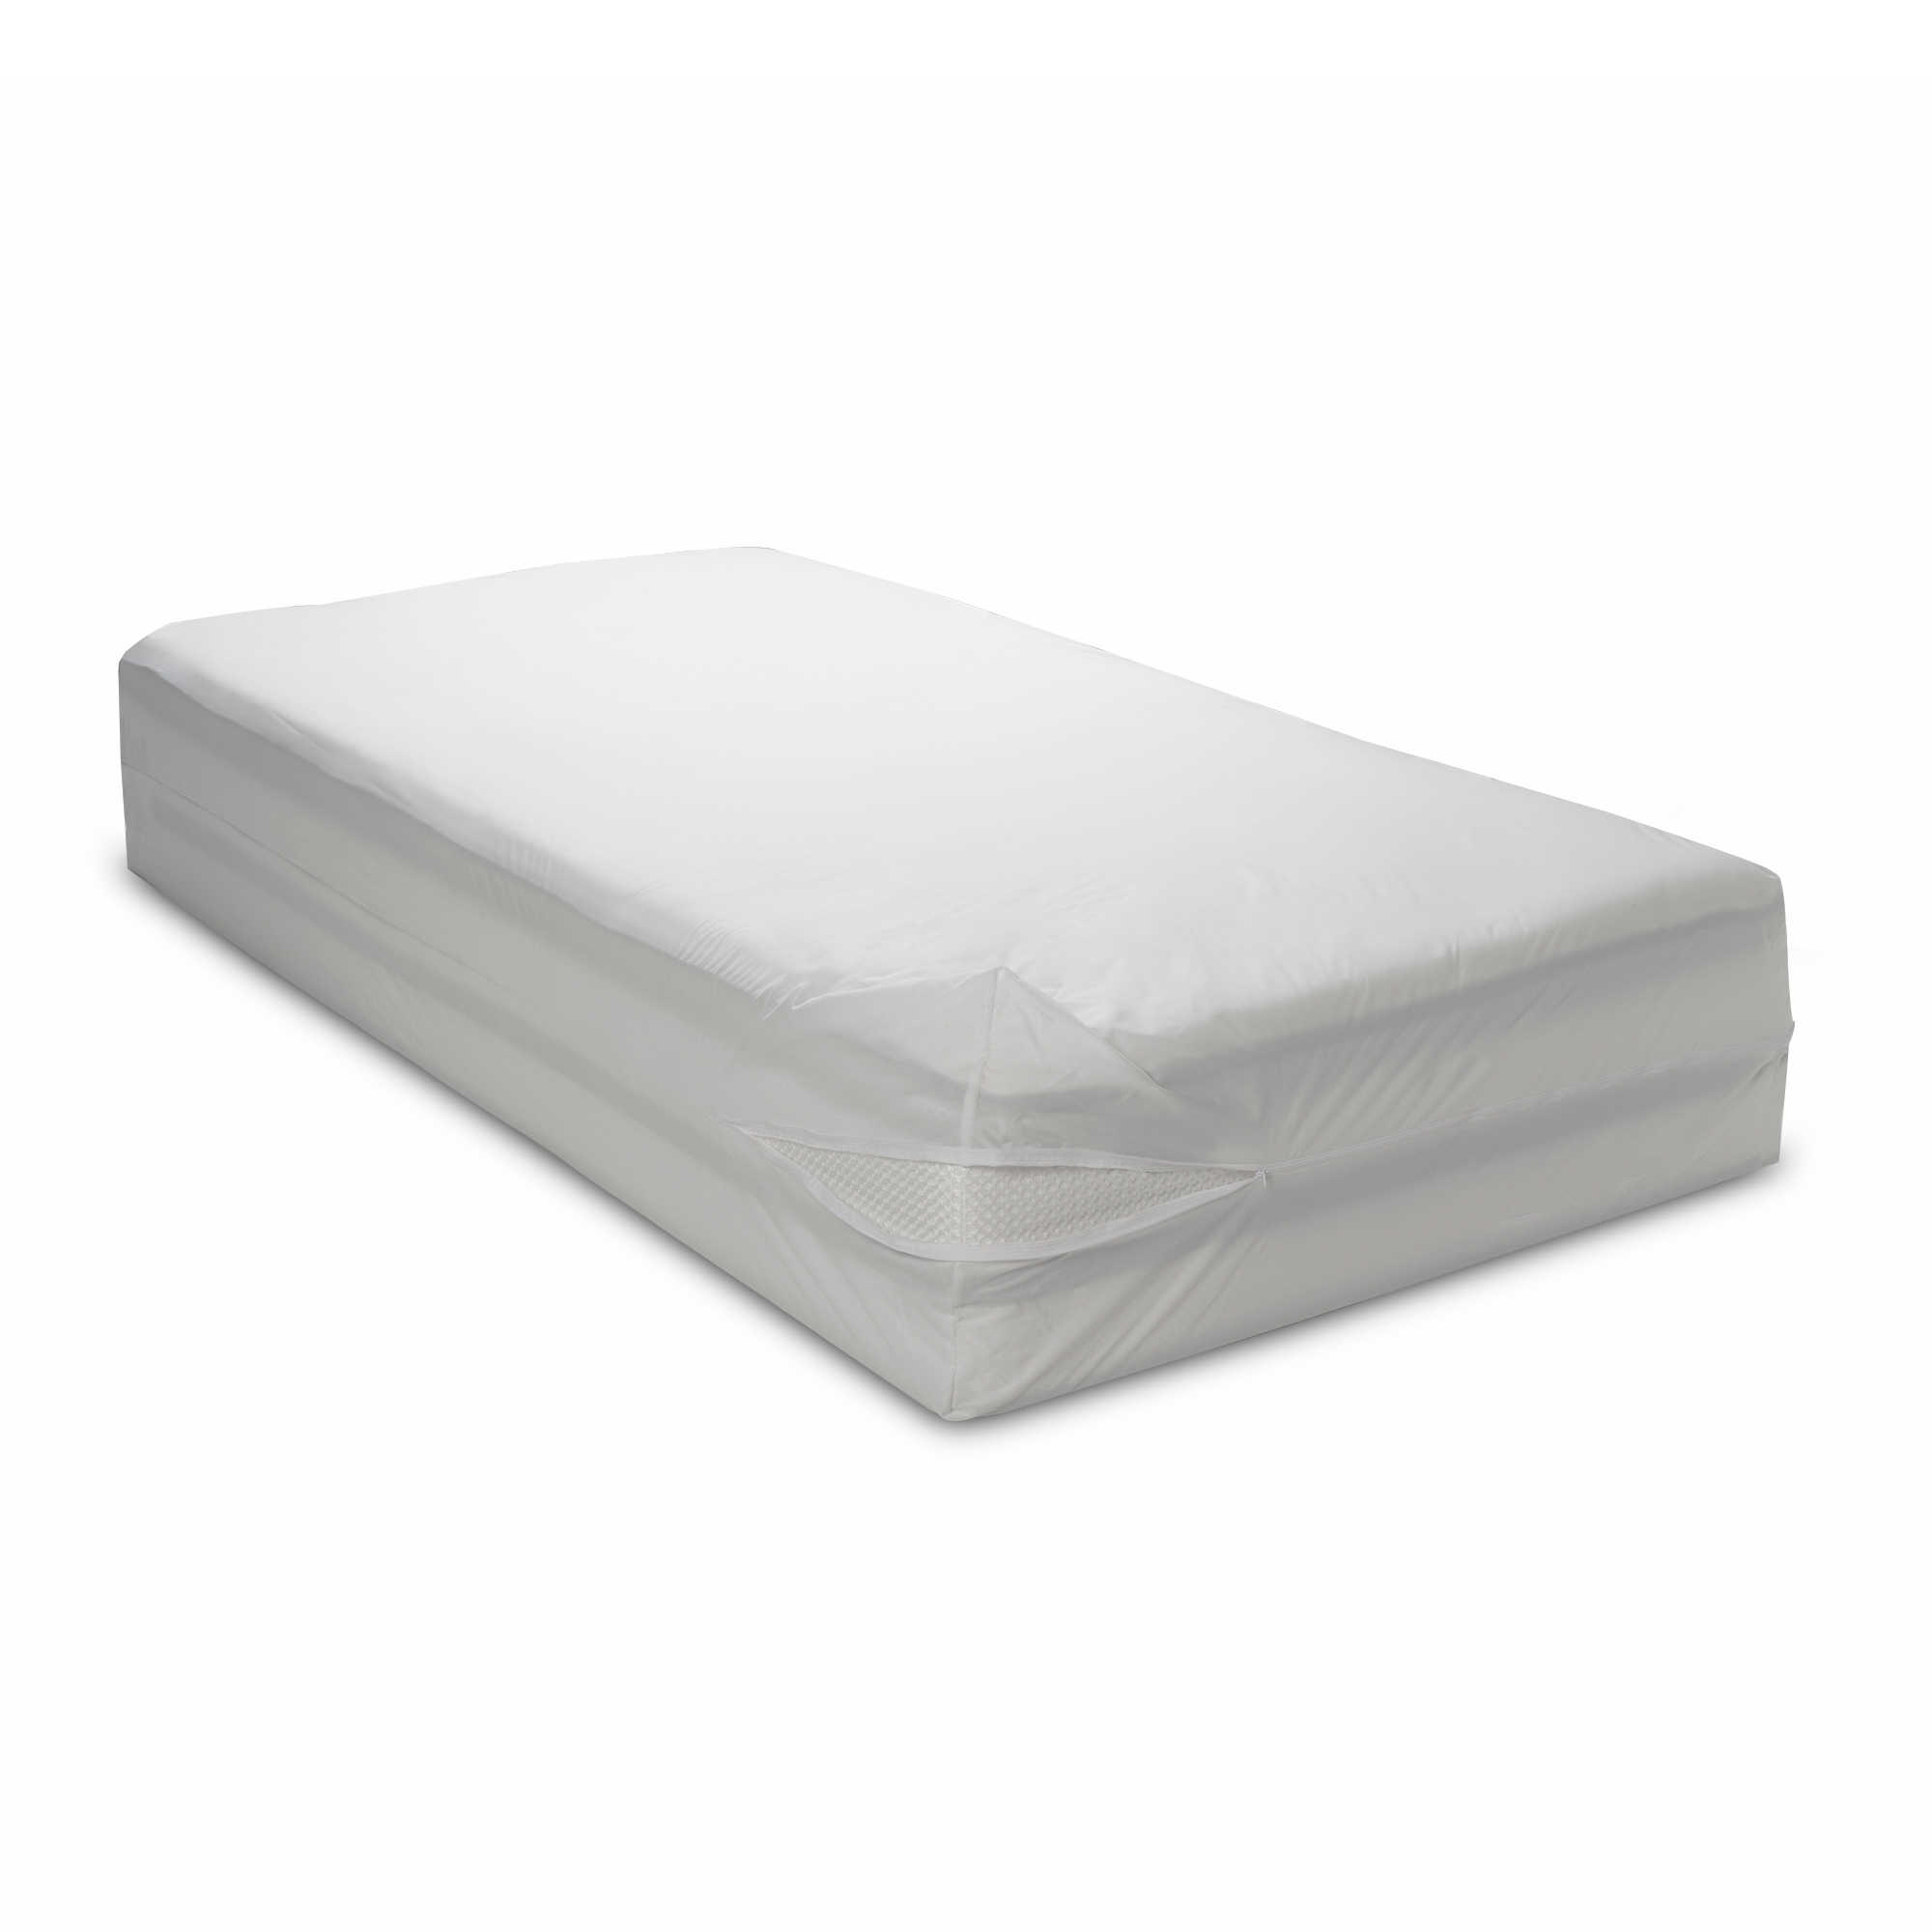 Water Resistant Washable 16 Bed Bug Blocker Zippered Mattress Cover